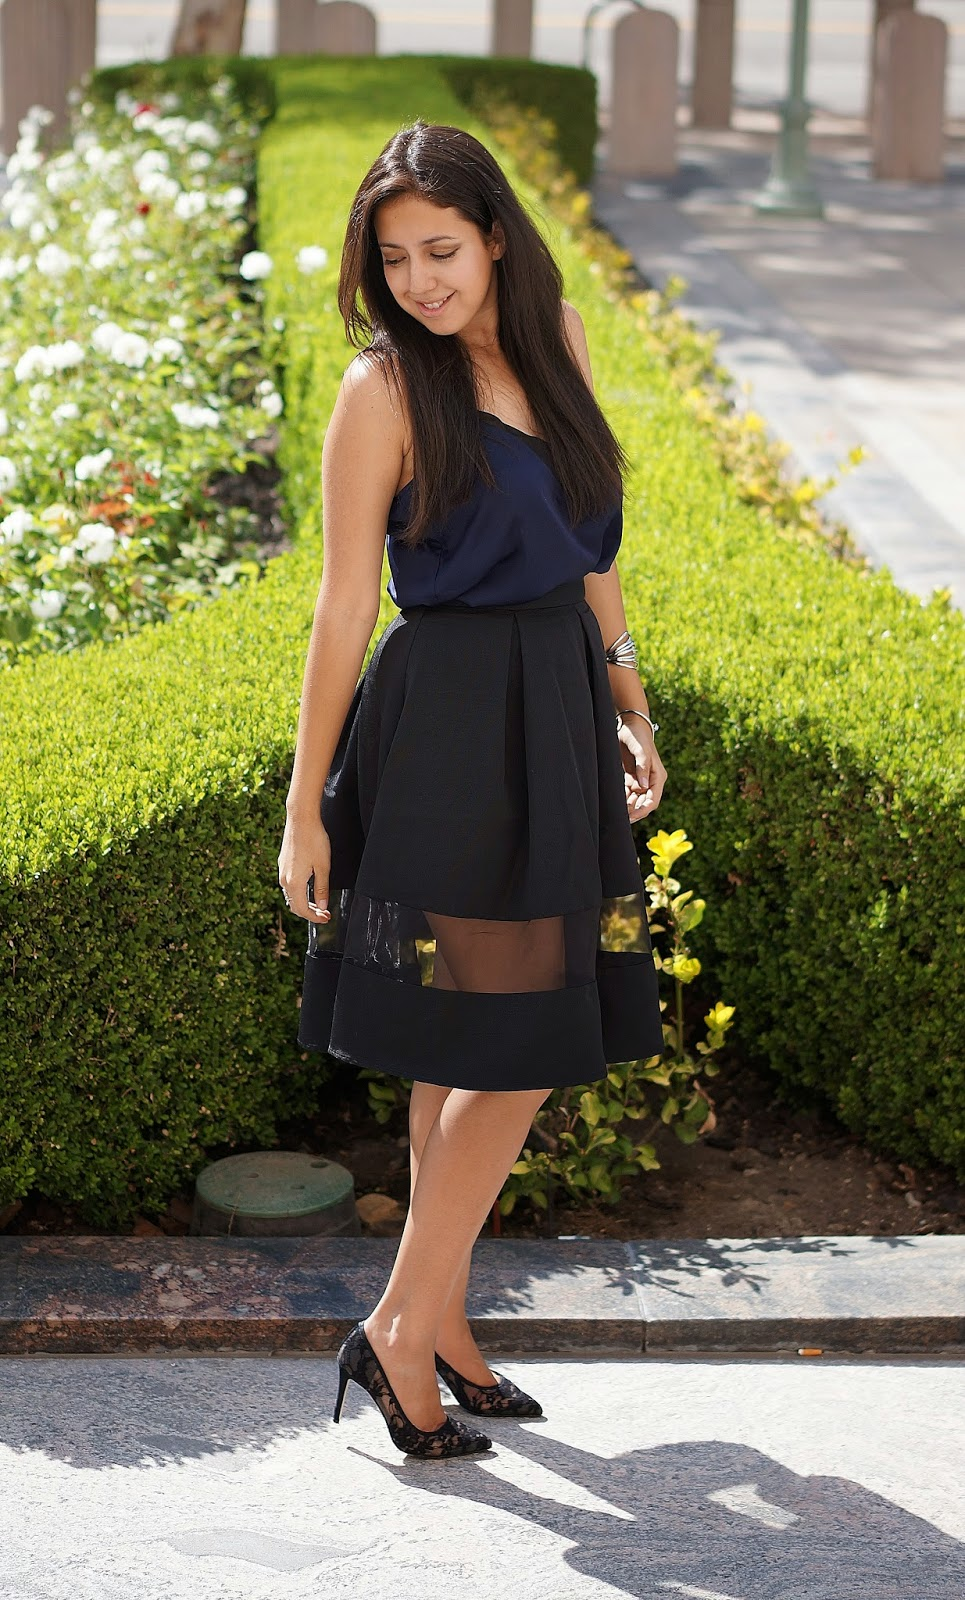 Express Pleated Skirt, Shoemint Lace pumps, Fashion Blogger,